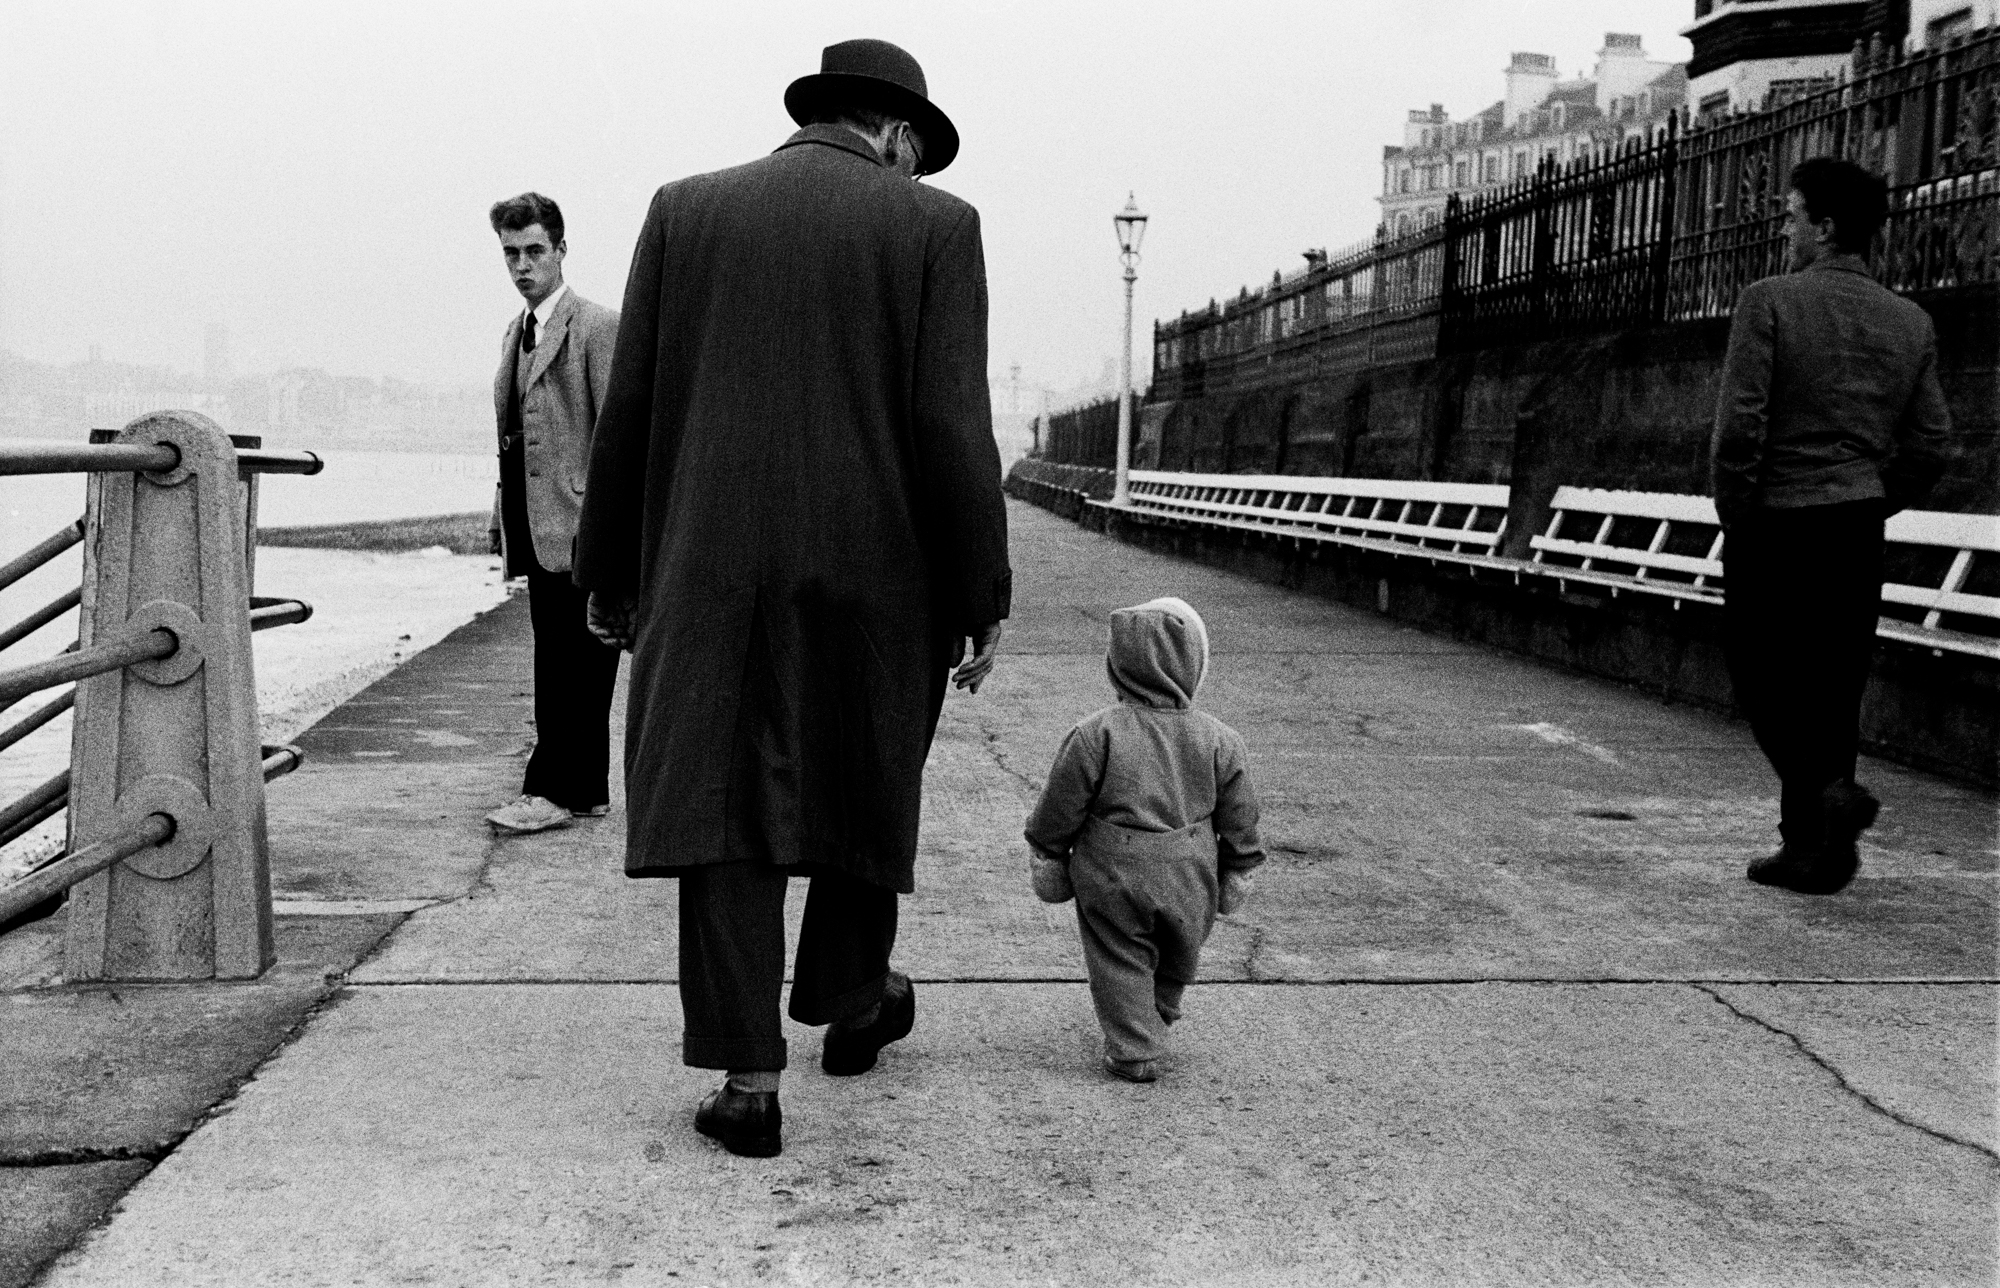 OUT AND ABOUT - Seafront - Margate - 1960's